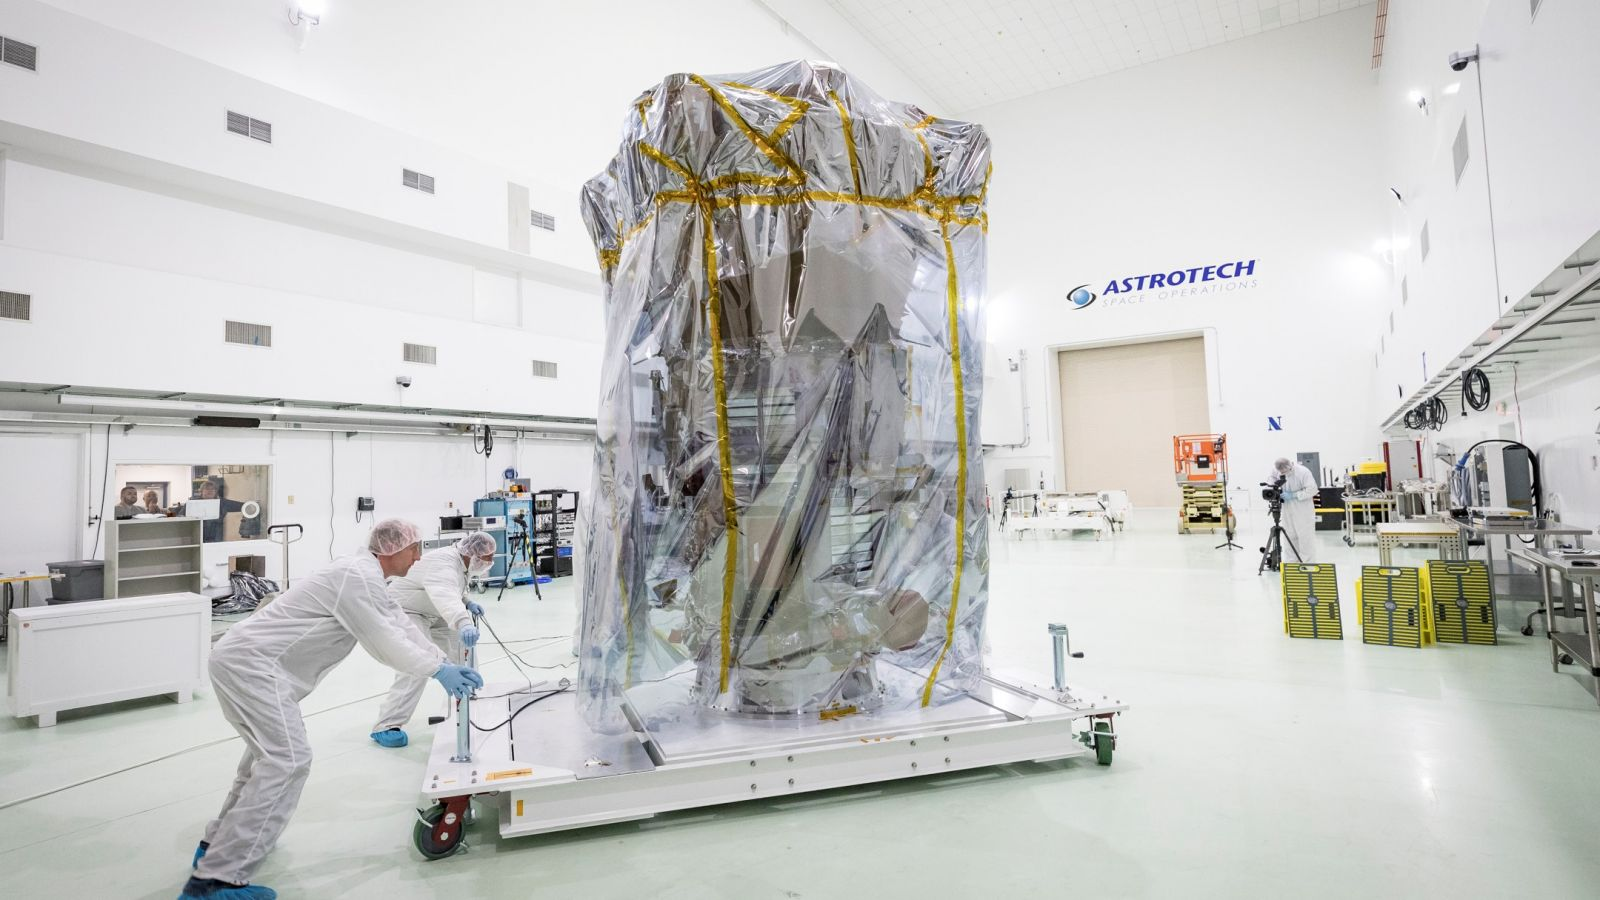 The Parker Solar Probe is moved into Astrotech Space Operation's clean room in Titusville, Florida, to begin final preparations before launch. Photo Credit: Ed Whitman / Johns Hopkins APL / NASA